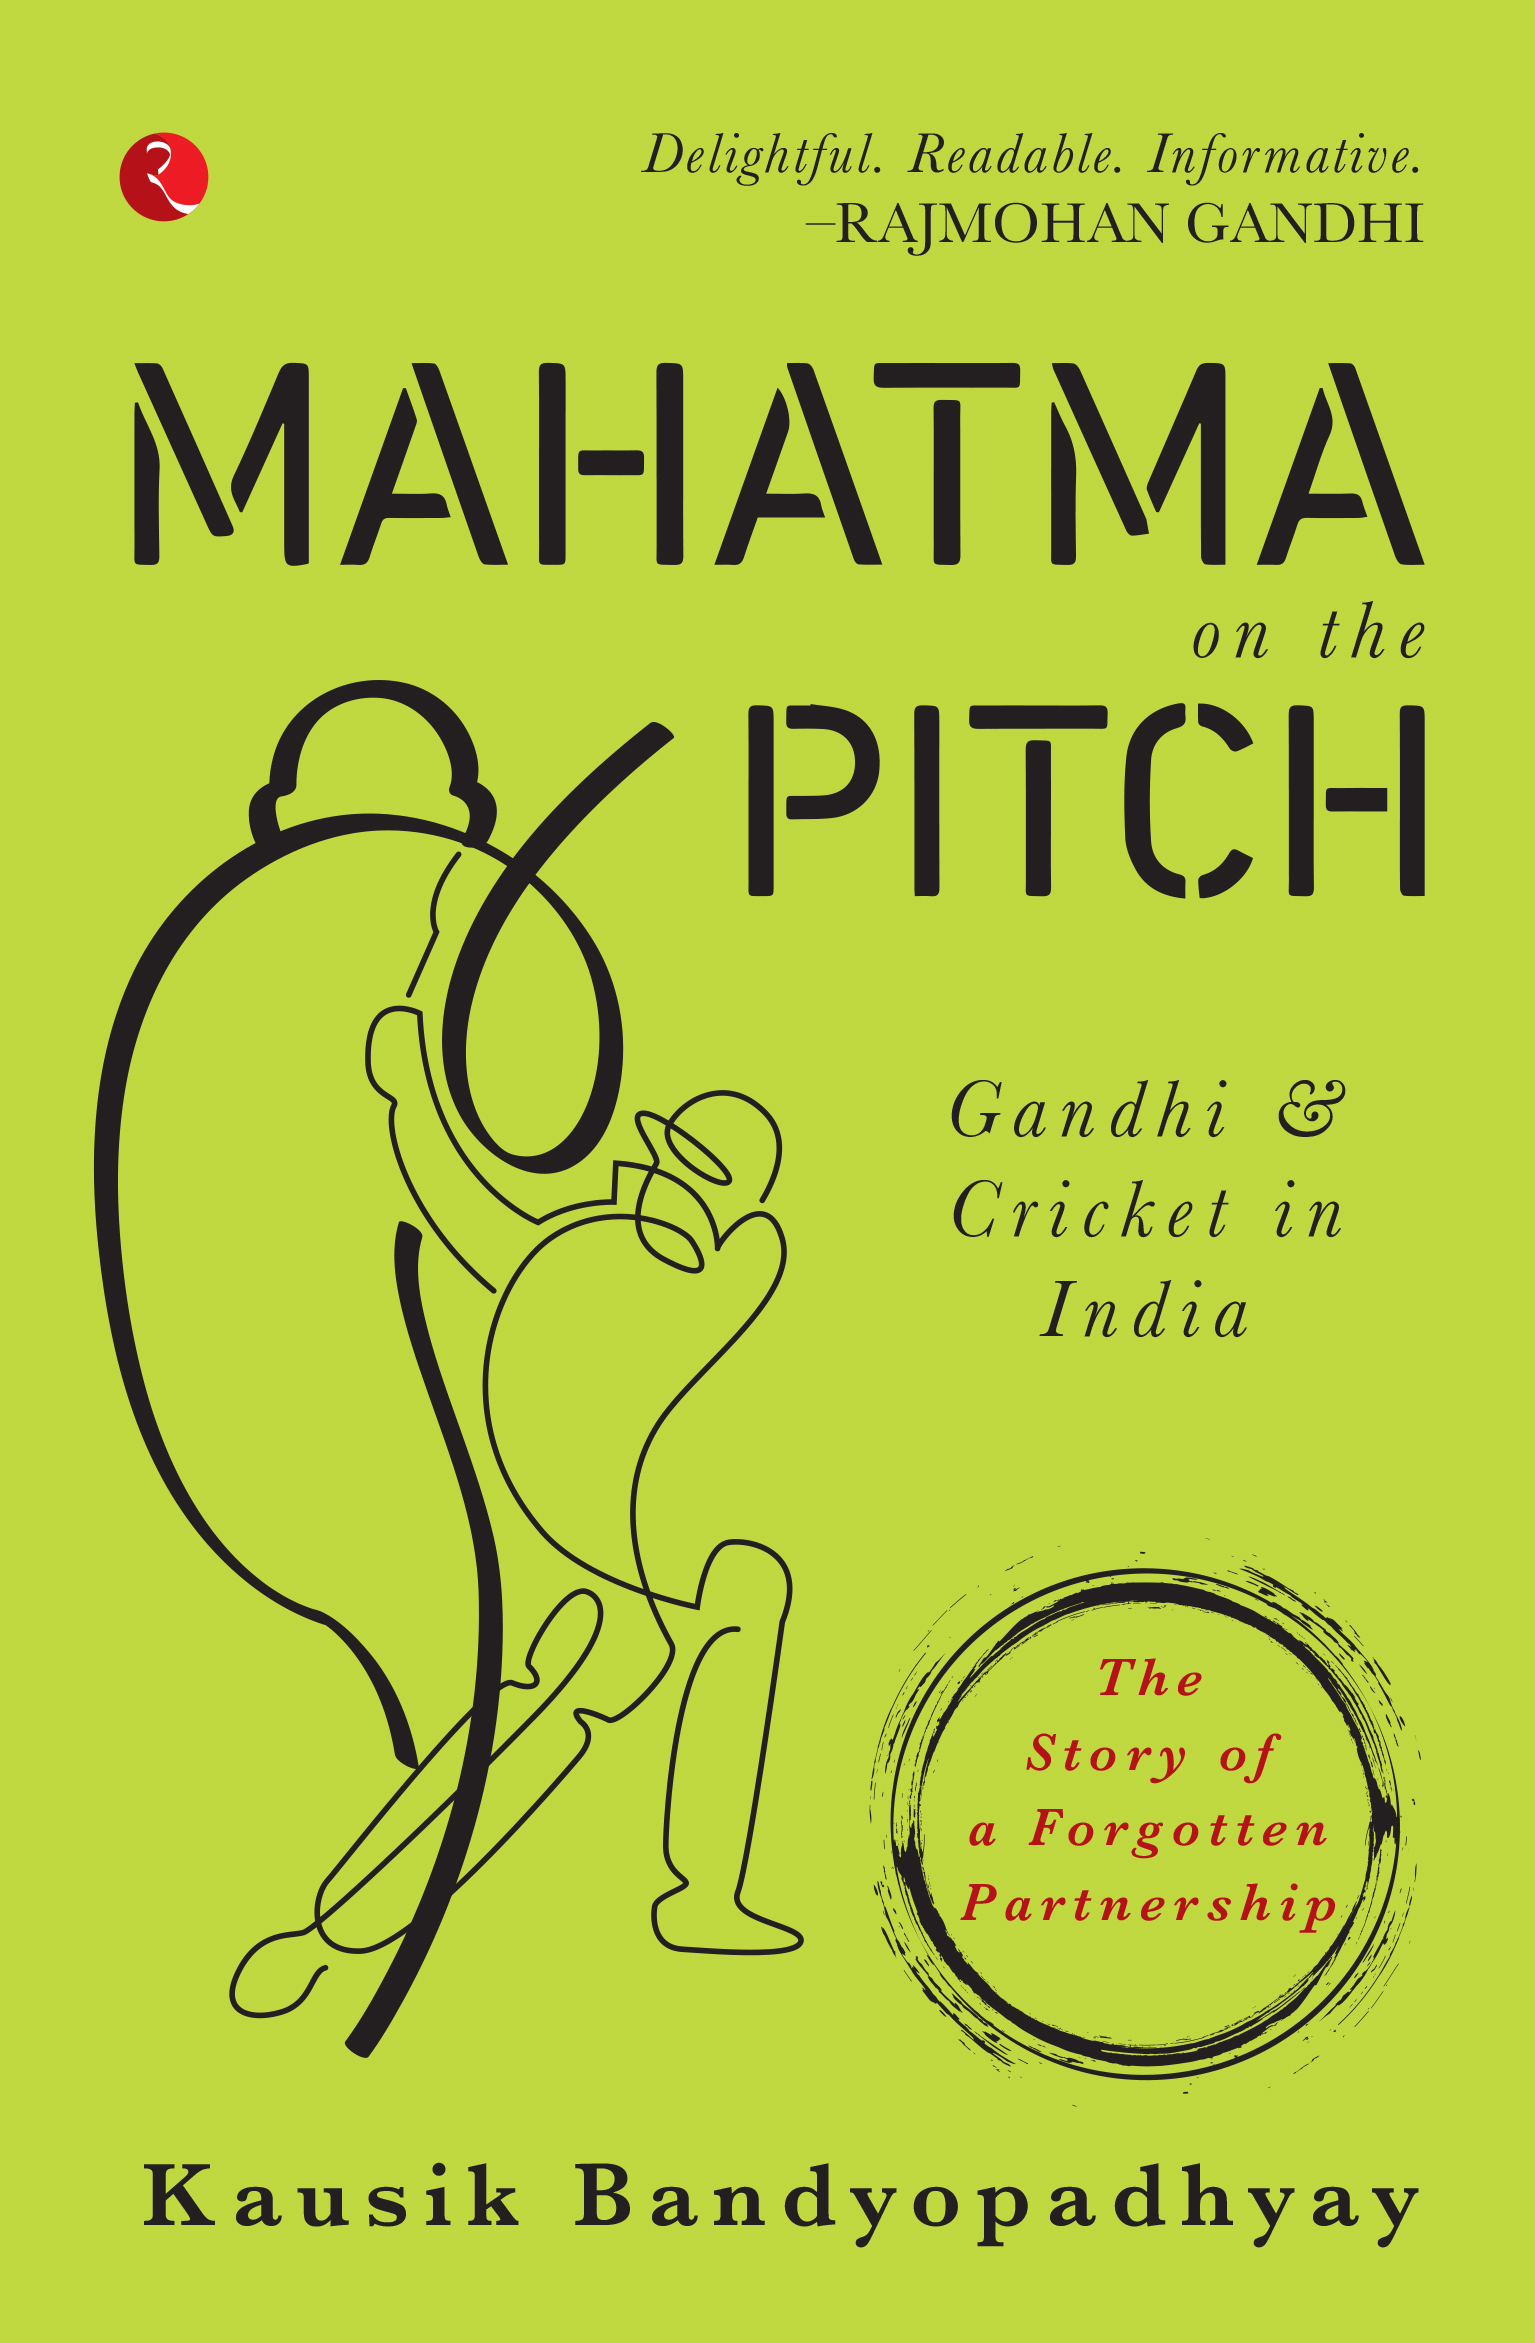 Book Excerpt - Mahatma on The Pitch by Kausik Bandyopadhyay